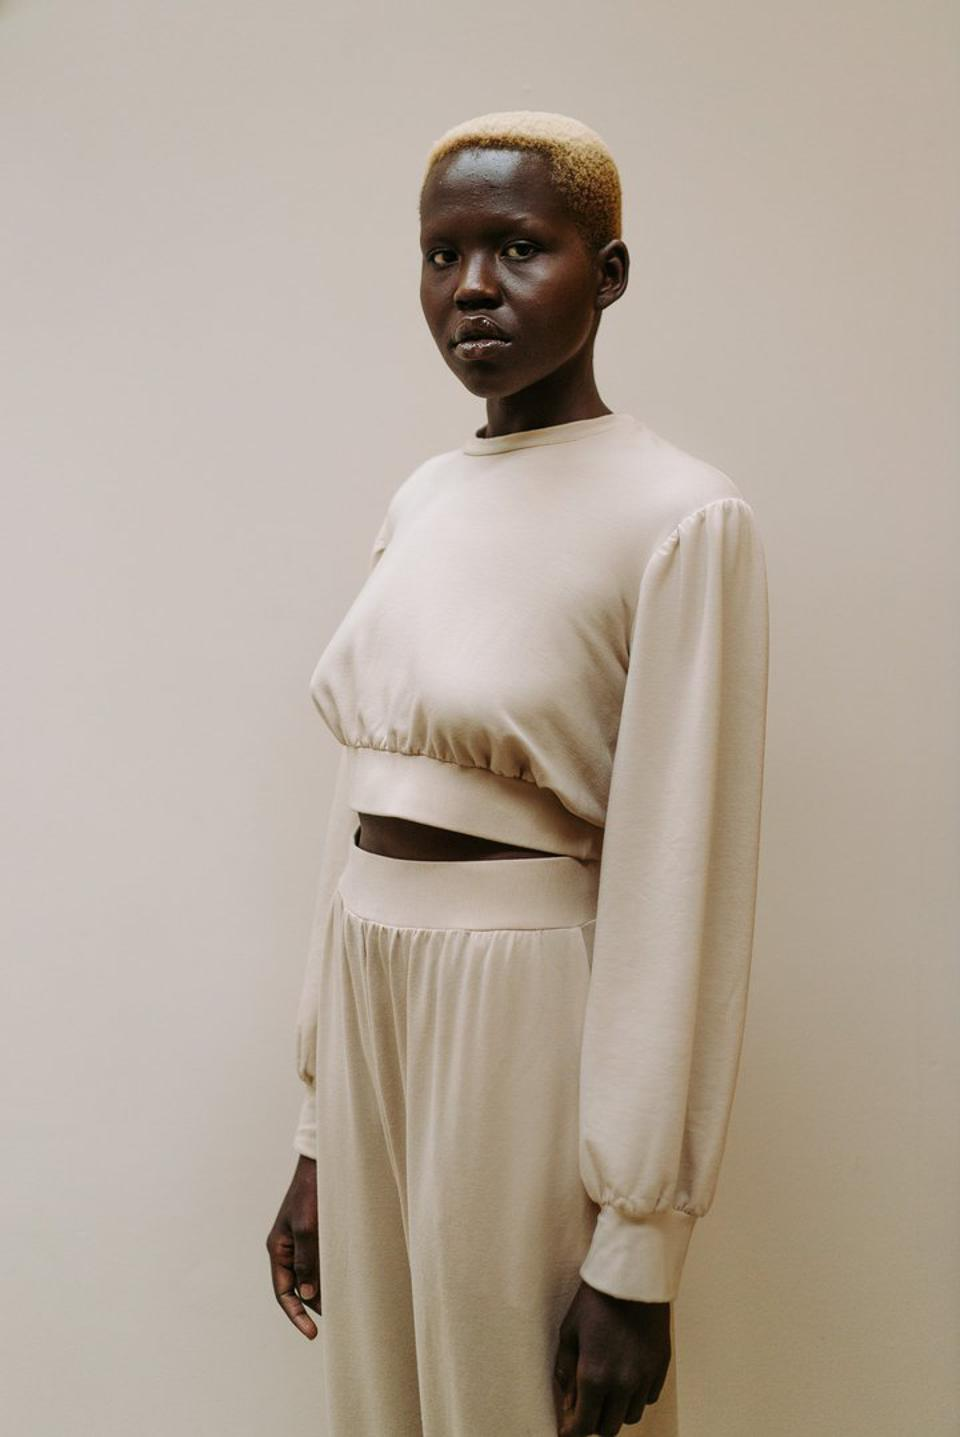 The Essential Pant and Cropped Sweater are key pieces from LONDRE's Loungewear Line.